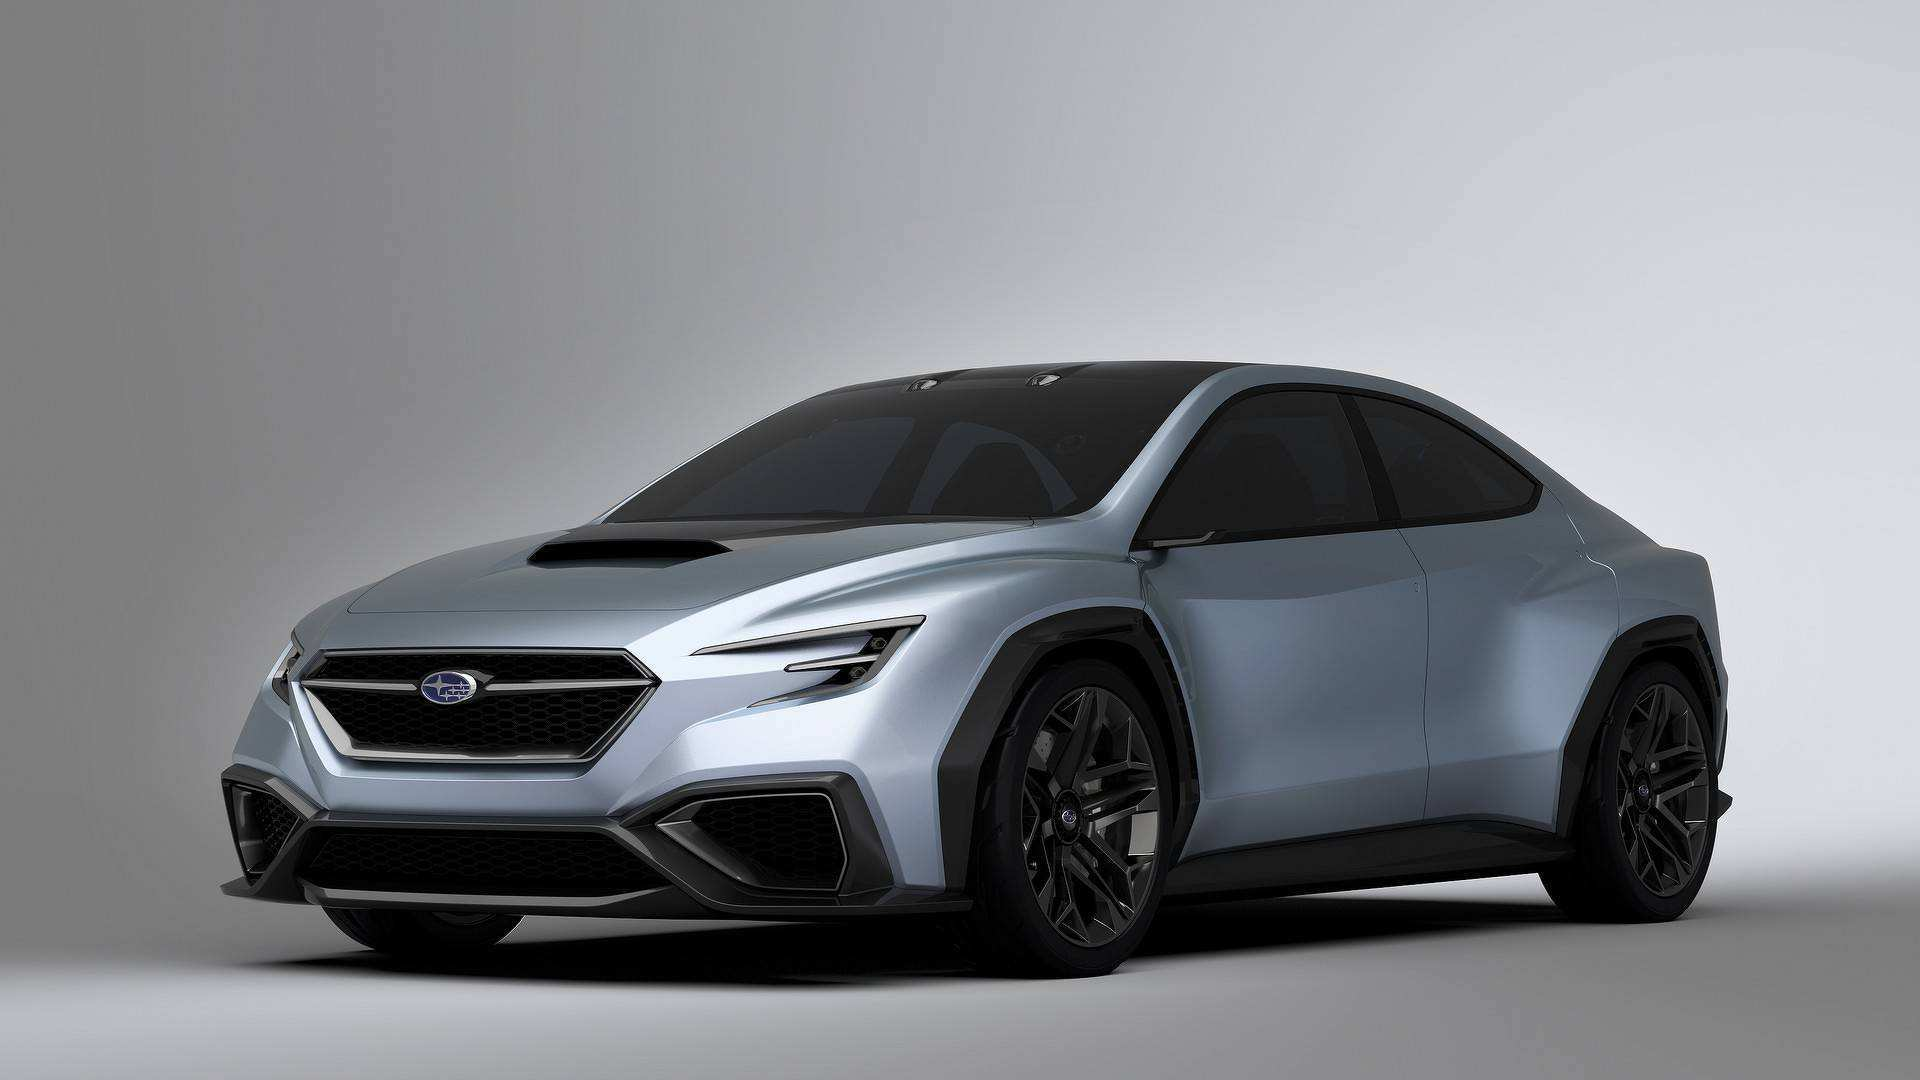 78 Gallery of Subaru Plans For 2019 Concept Redesign And Review Exterior with Subaru Plans For 2019 Concept Redesign And Review